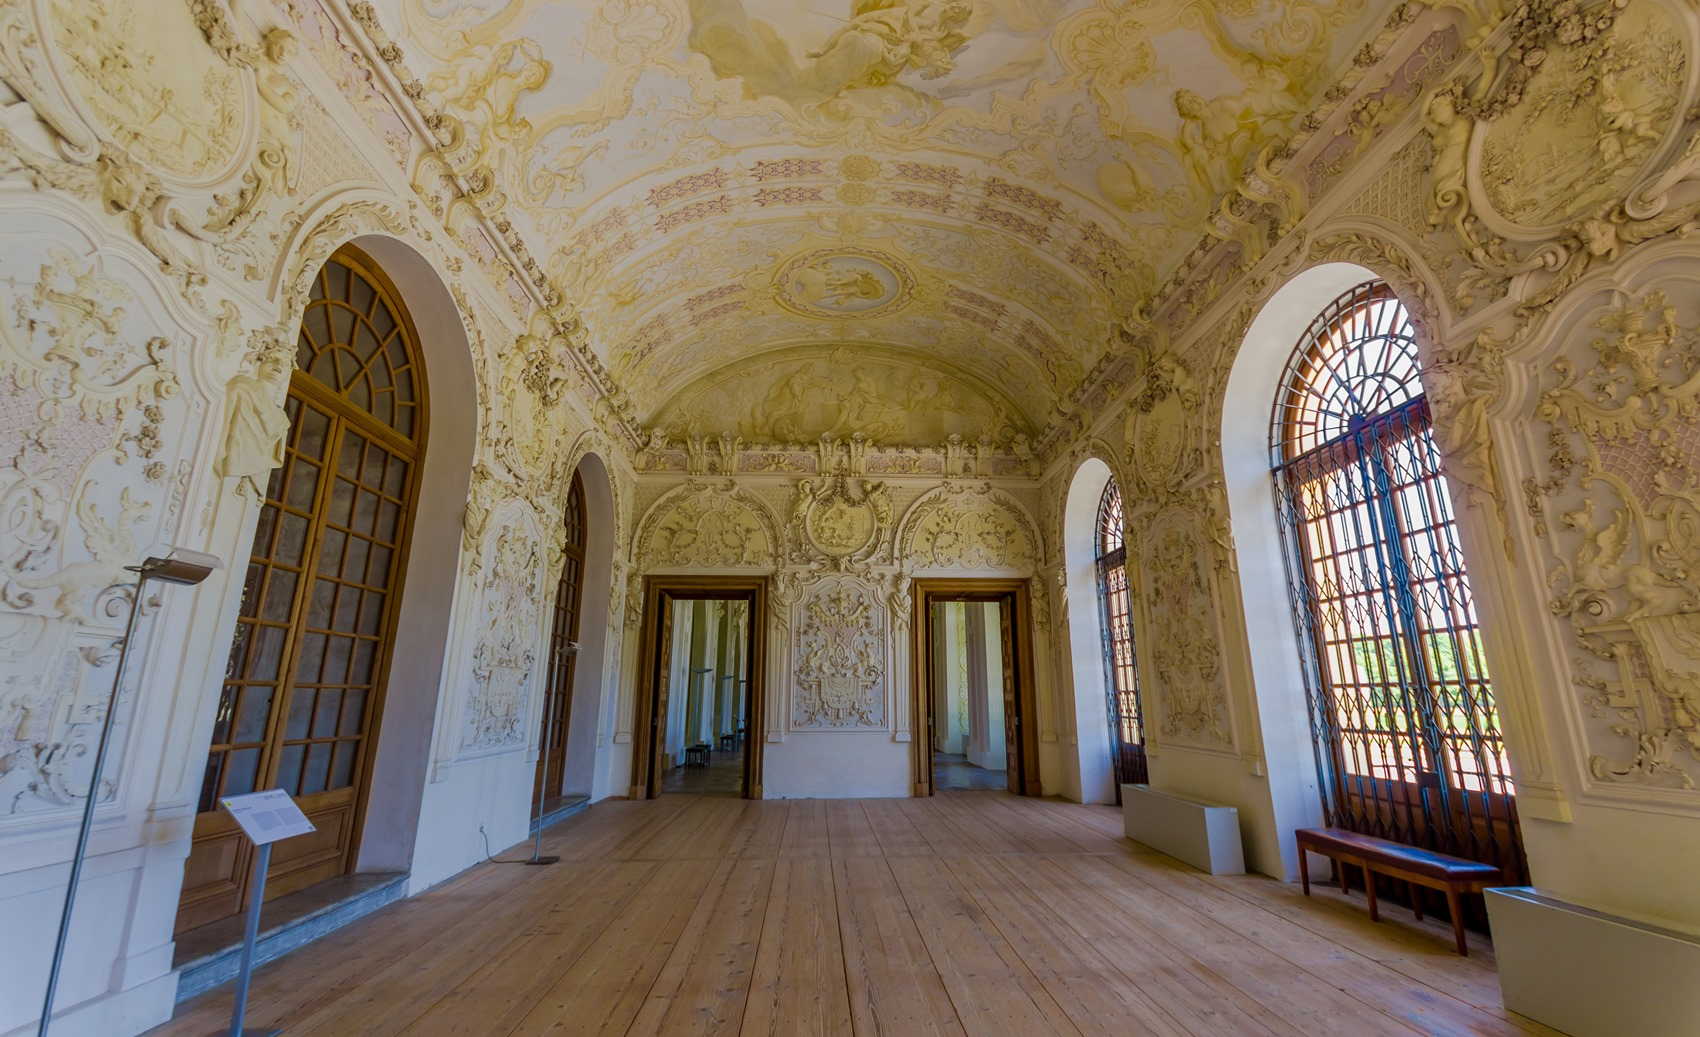 Schleissheim, Germany - July 30, 2015: Inside main palace building, rooms with incredible paintings, decorations, details and ornaments in true european traditional architecture